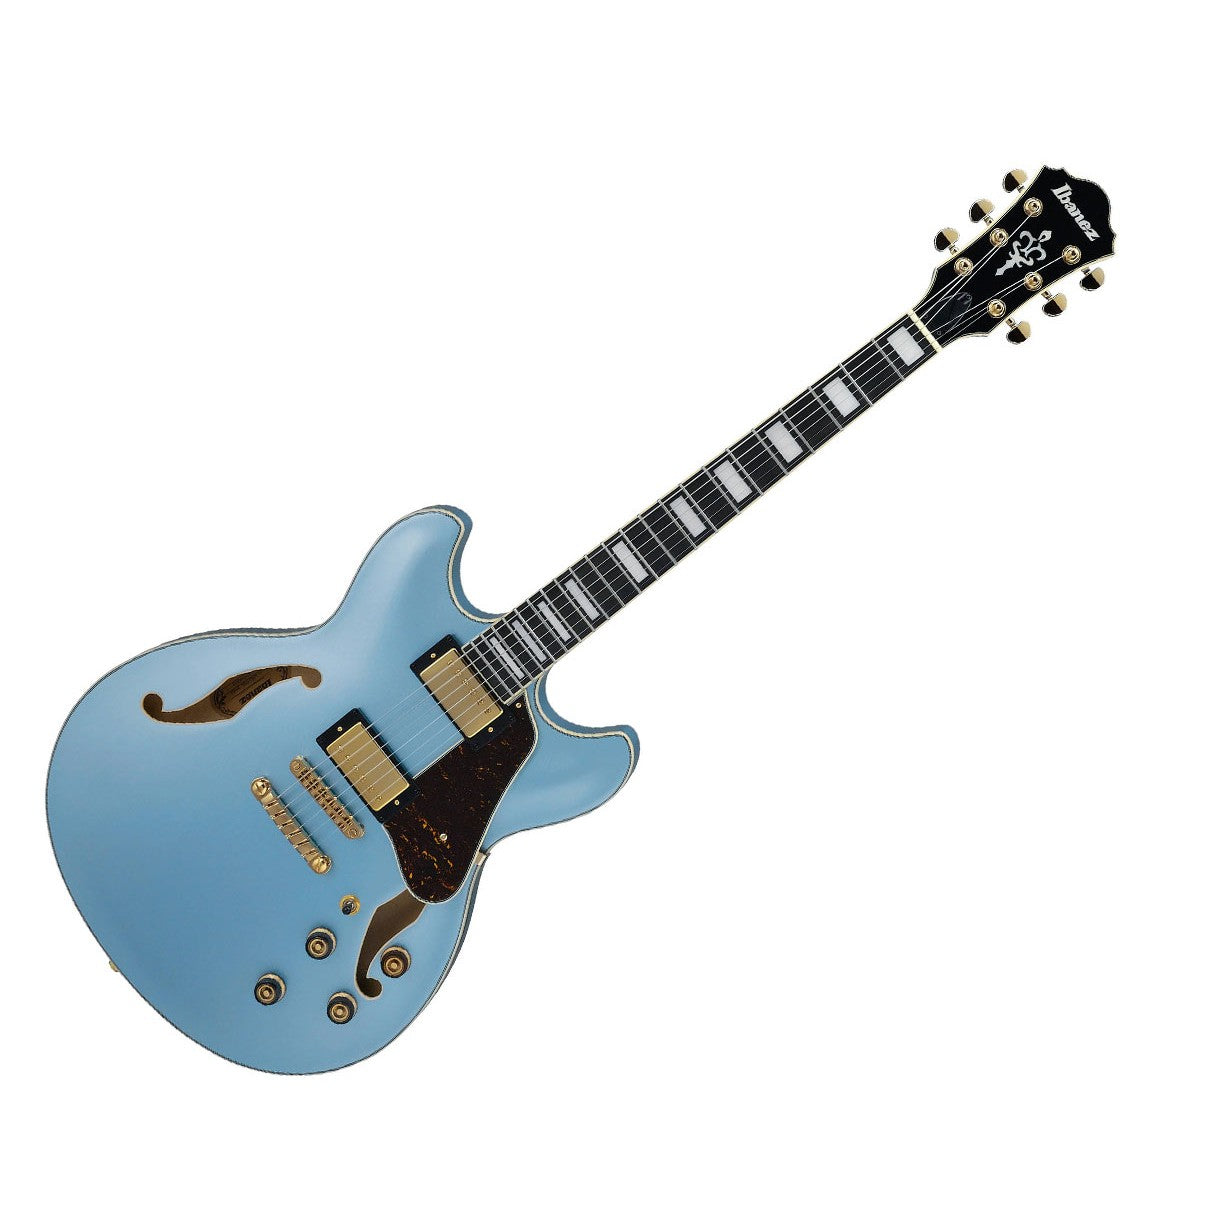 Ibanez Artcore AS83STE Hollow Body Electric Guitar Steel Blue